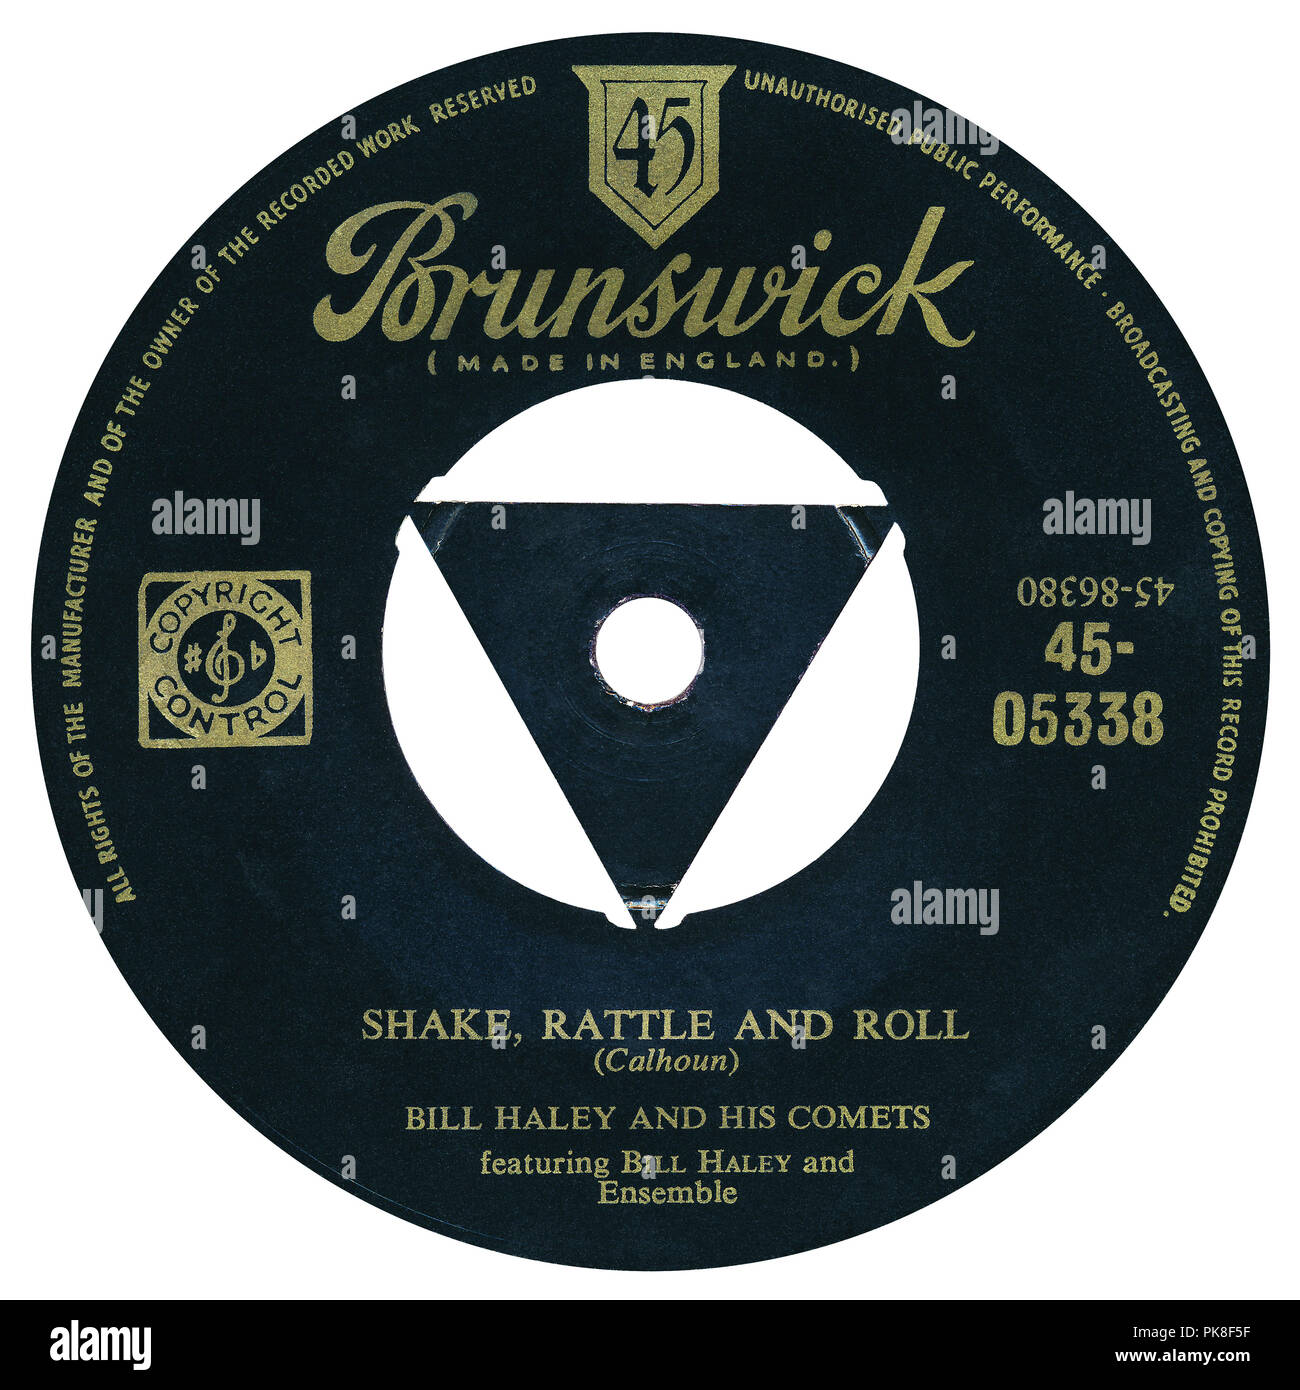 """UK 45 rpm 7"""" single of Shake, Rattle And Roll by Bill Haley And His Comets on the Brunswick label from 1954. Written by Jesse Stone under the pseudonym Charles E. Calhoun and produced by Milt Gabler. Stock Photo"""